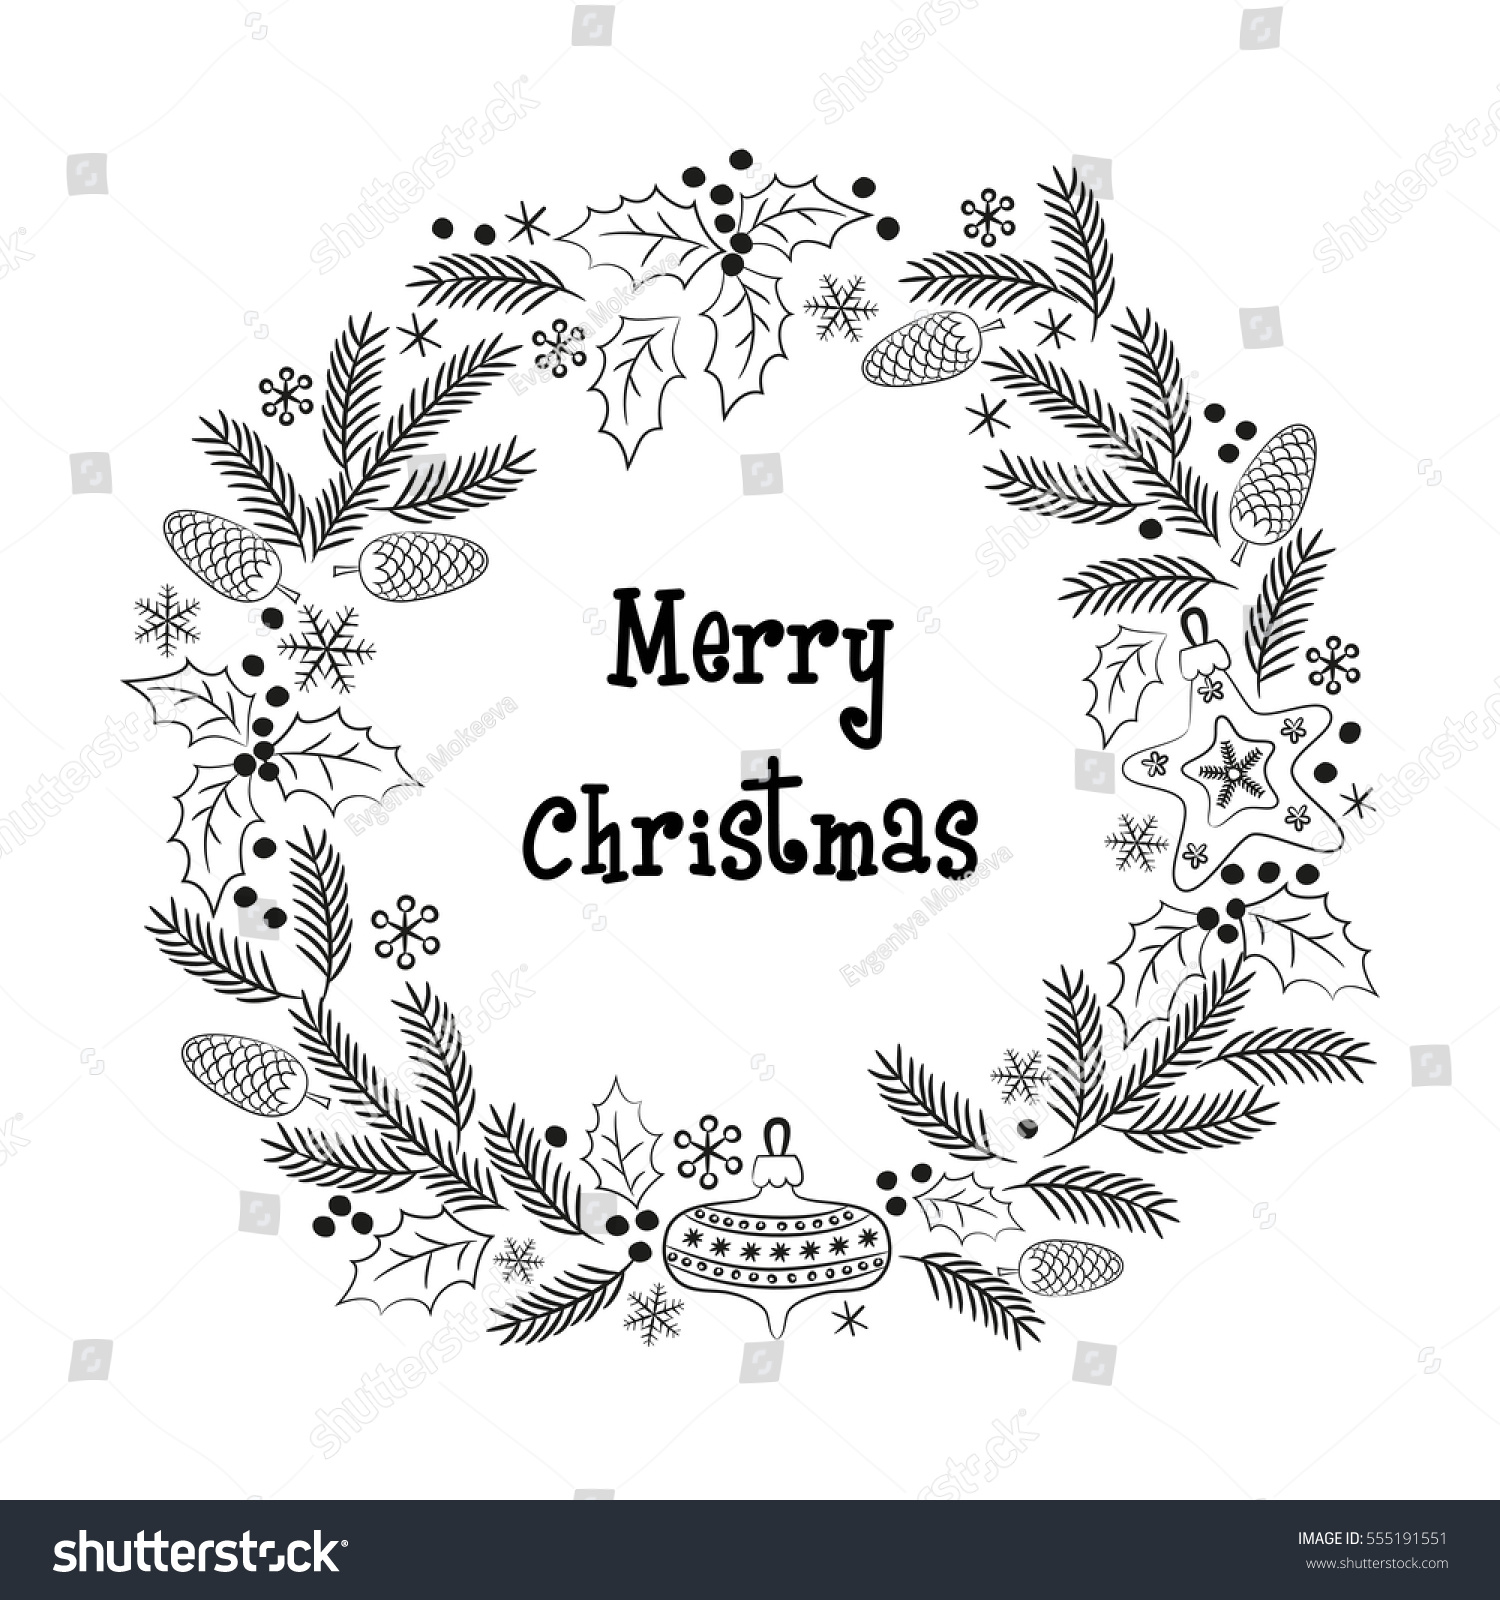 Christmas greeting wreath. Design for poster, card, invitation ...